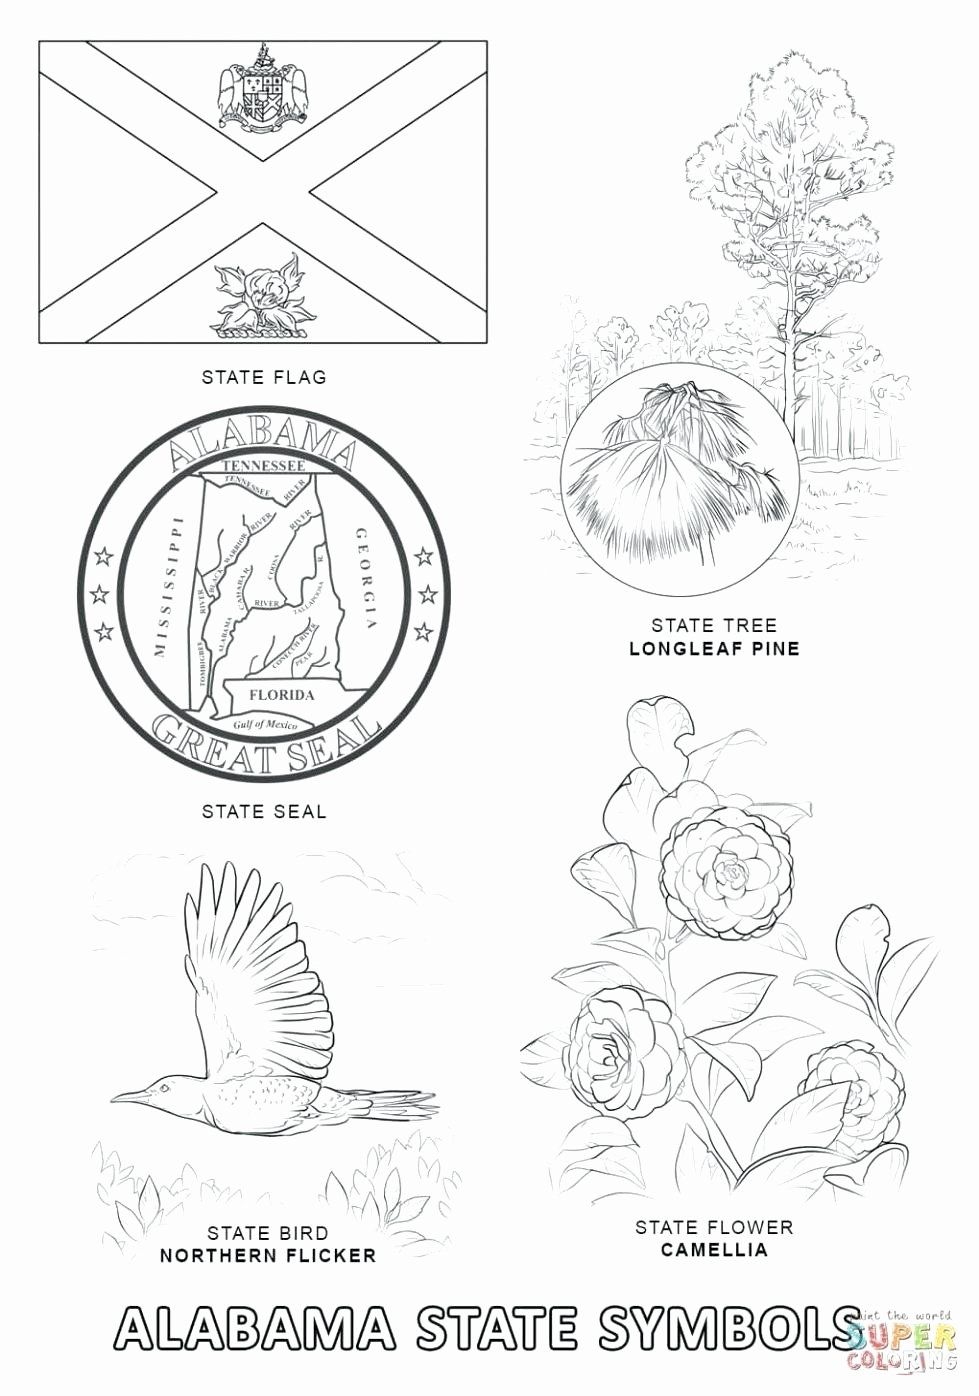 Nebraska State Flag Coloring Page Lovely Virginia State Flag